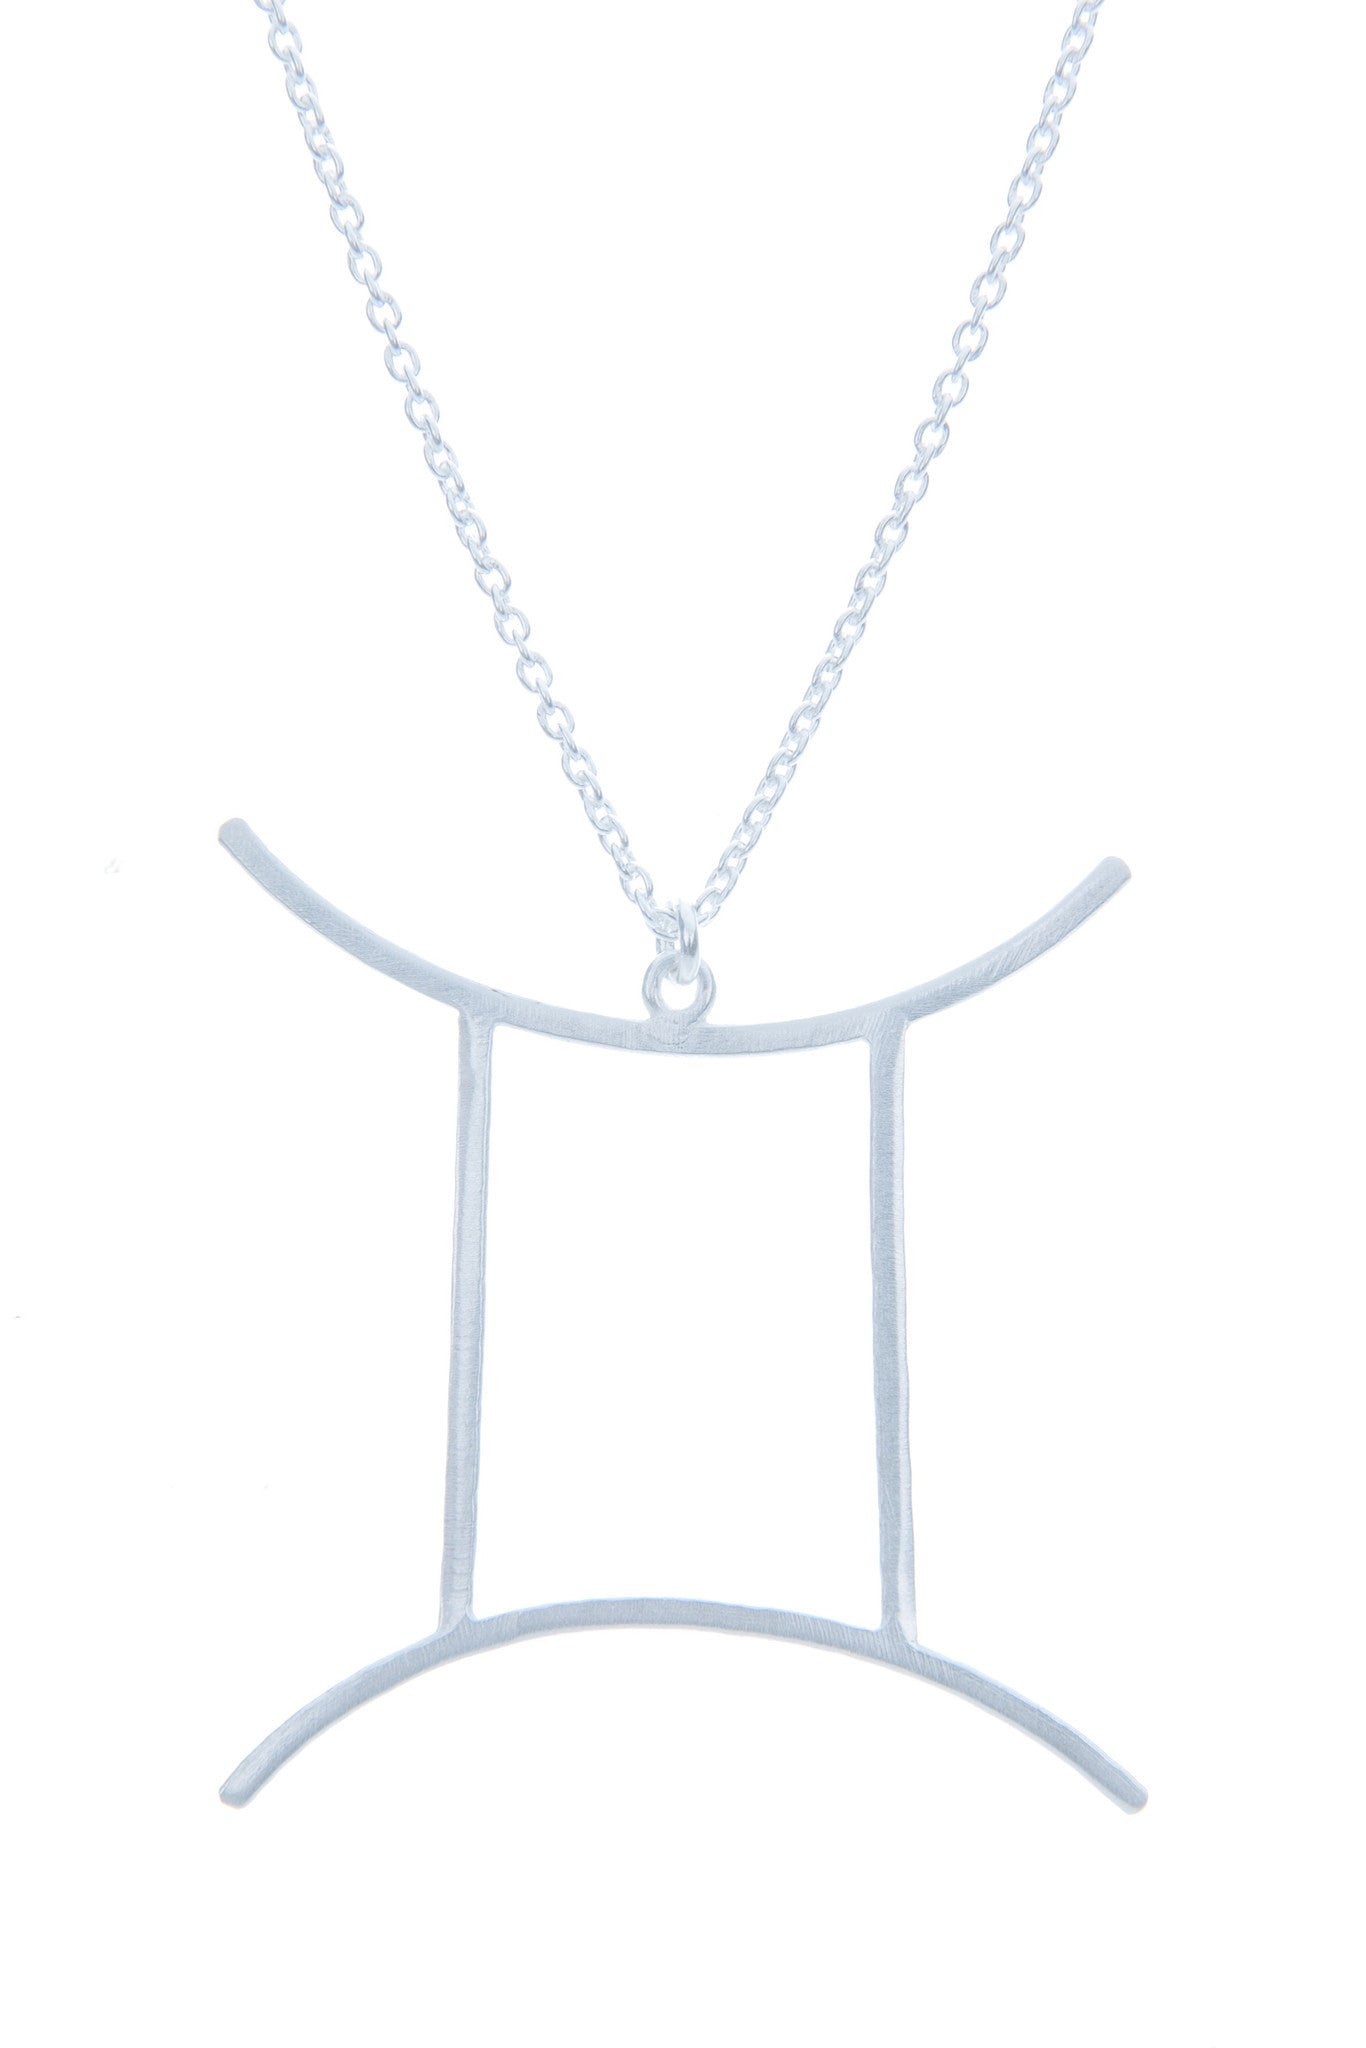 Handmade White Gold-Plated Necklaces